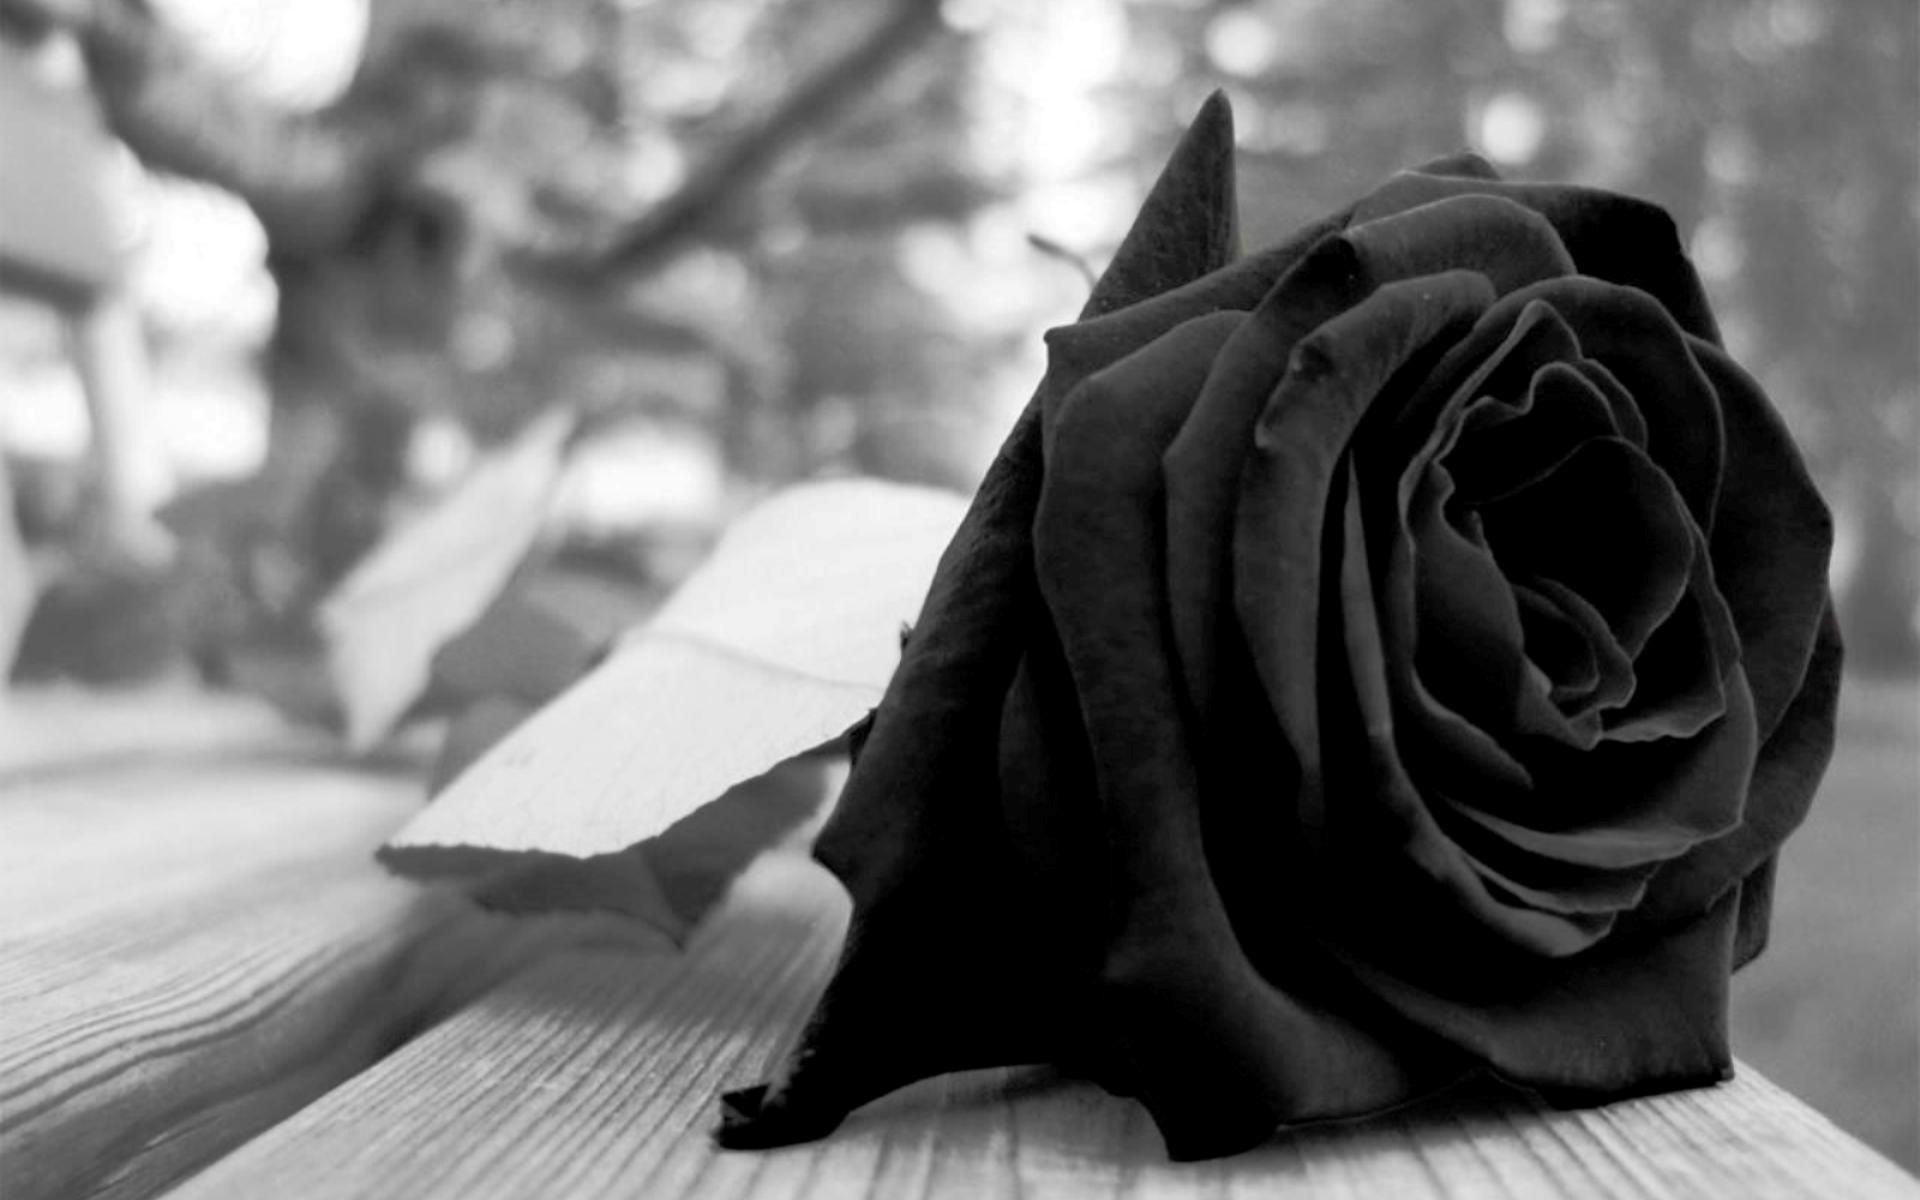 Black Rose Tumblr